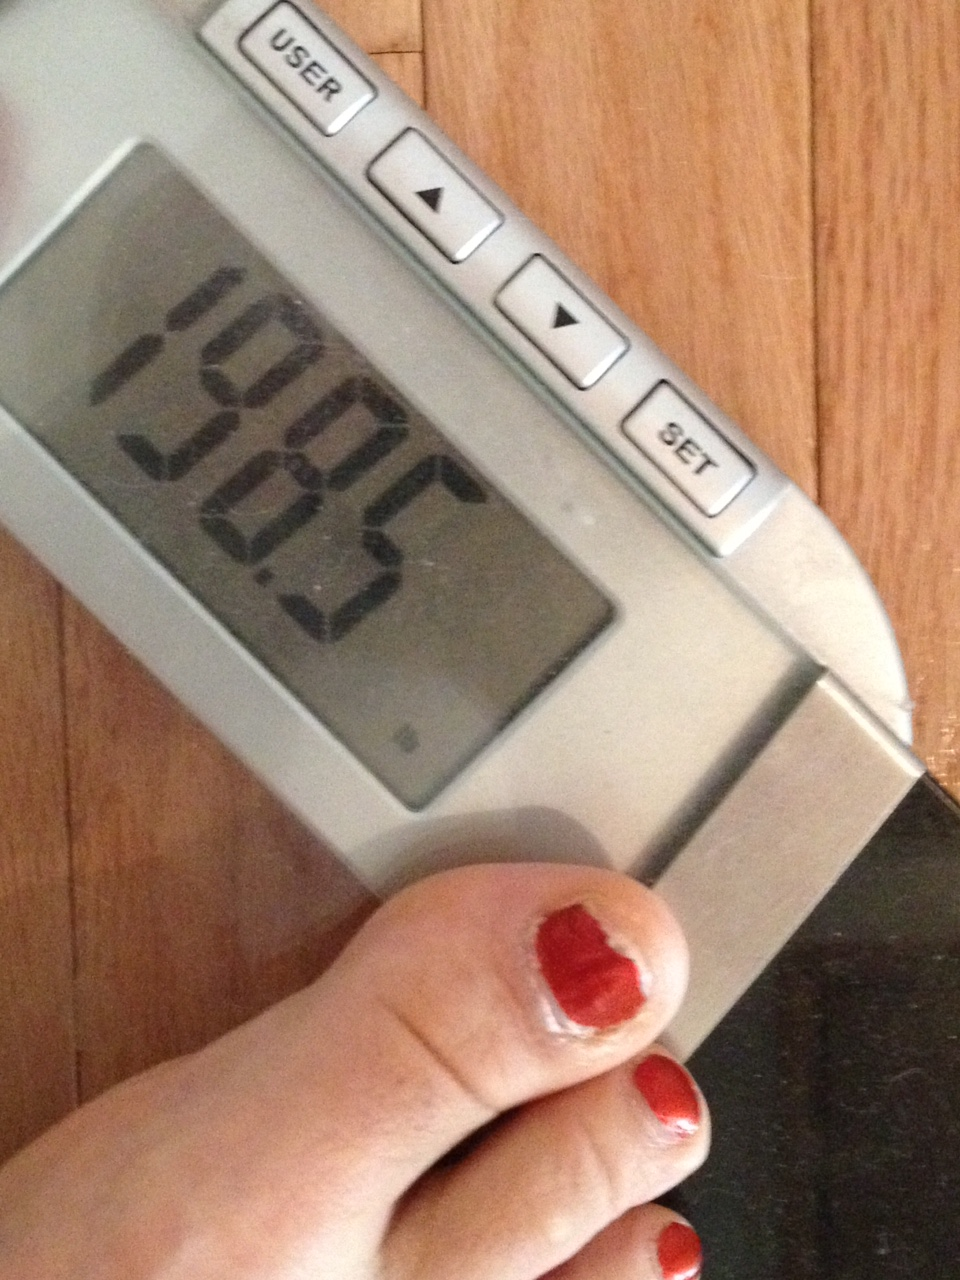 Suggests riding stationary bike for weight loss